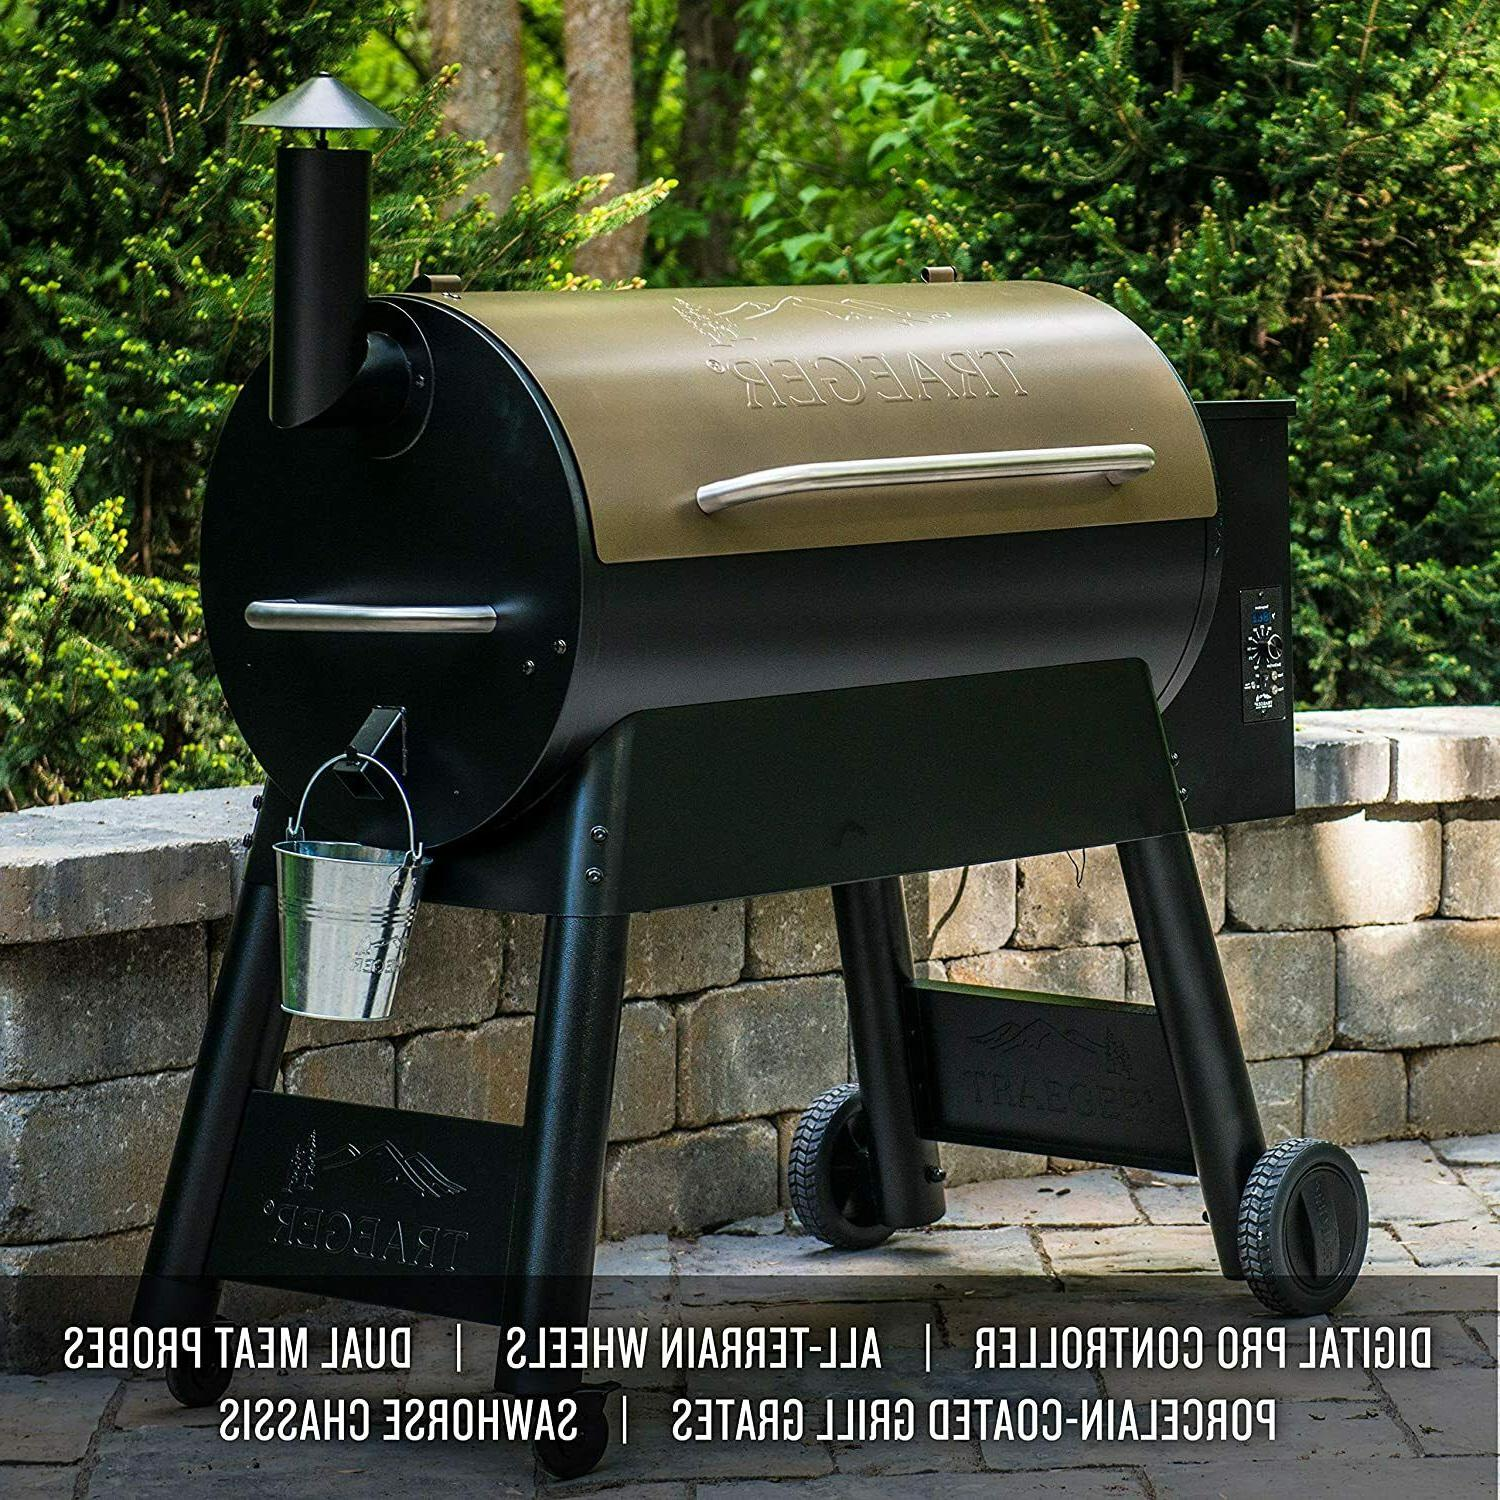 Traeger Grills Pro Series 34 Electric Wood Pellet Grill and